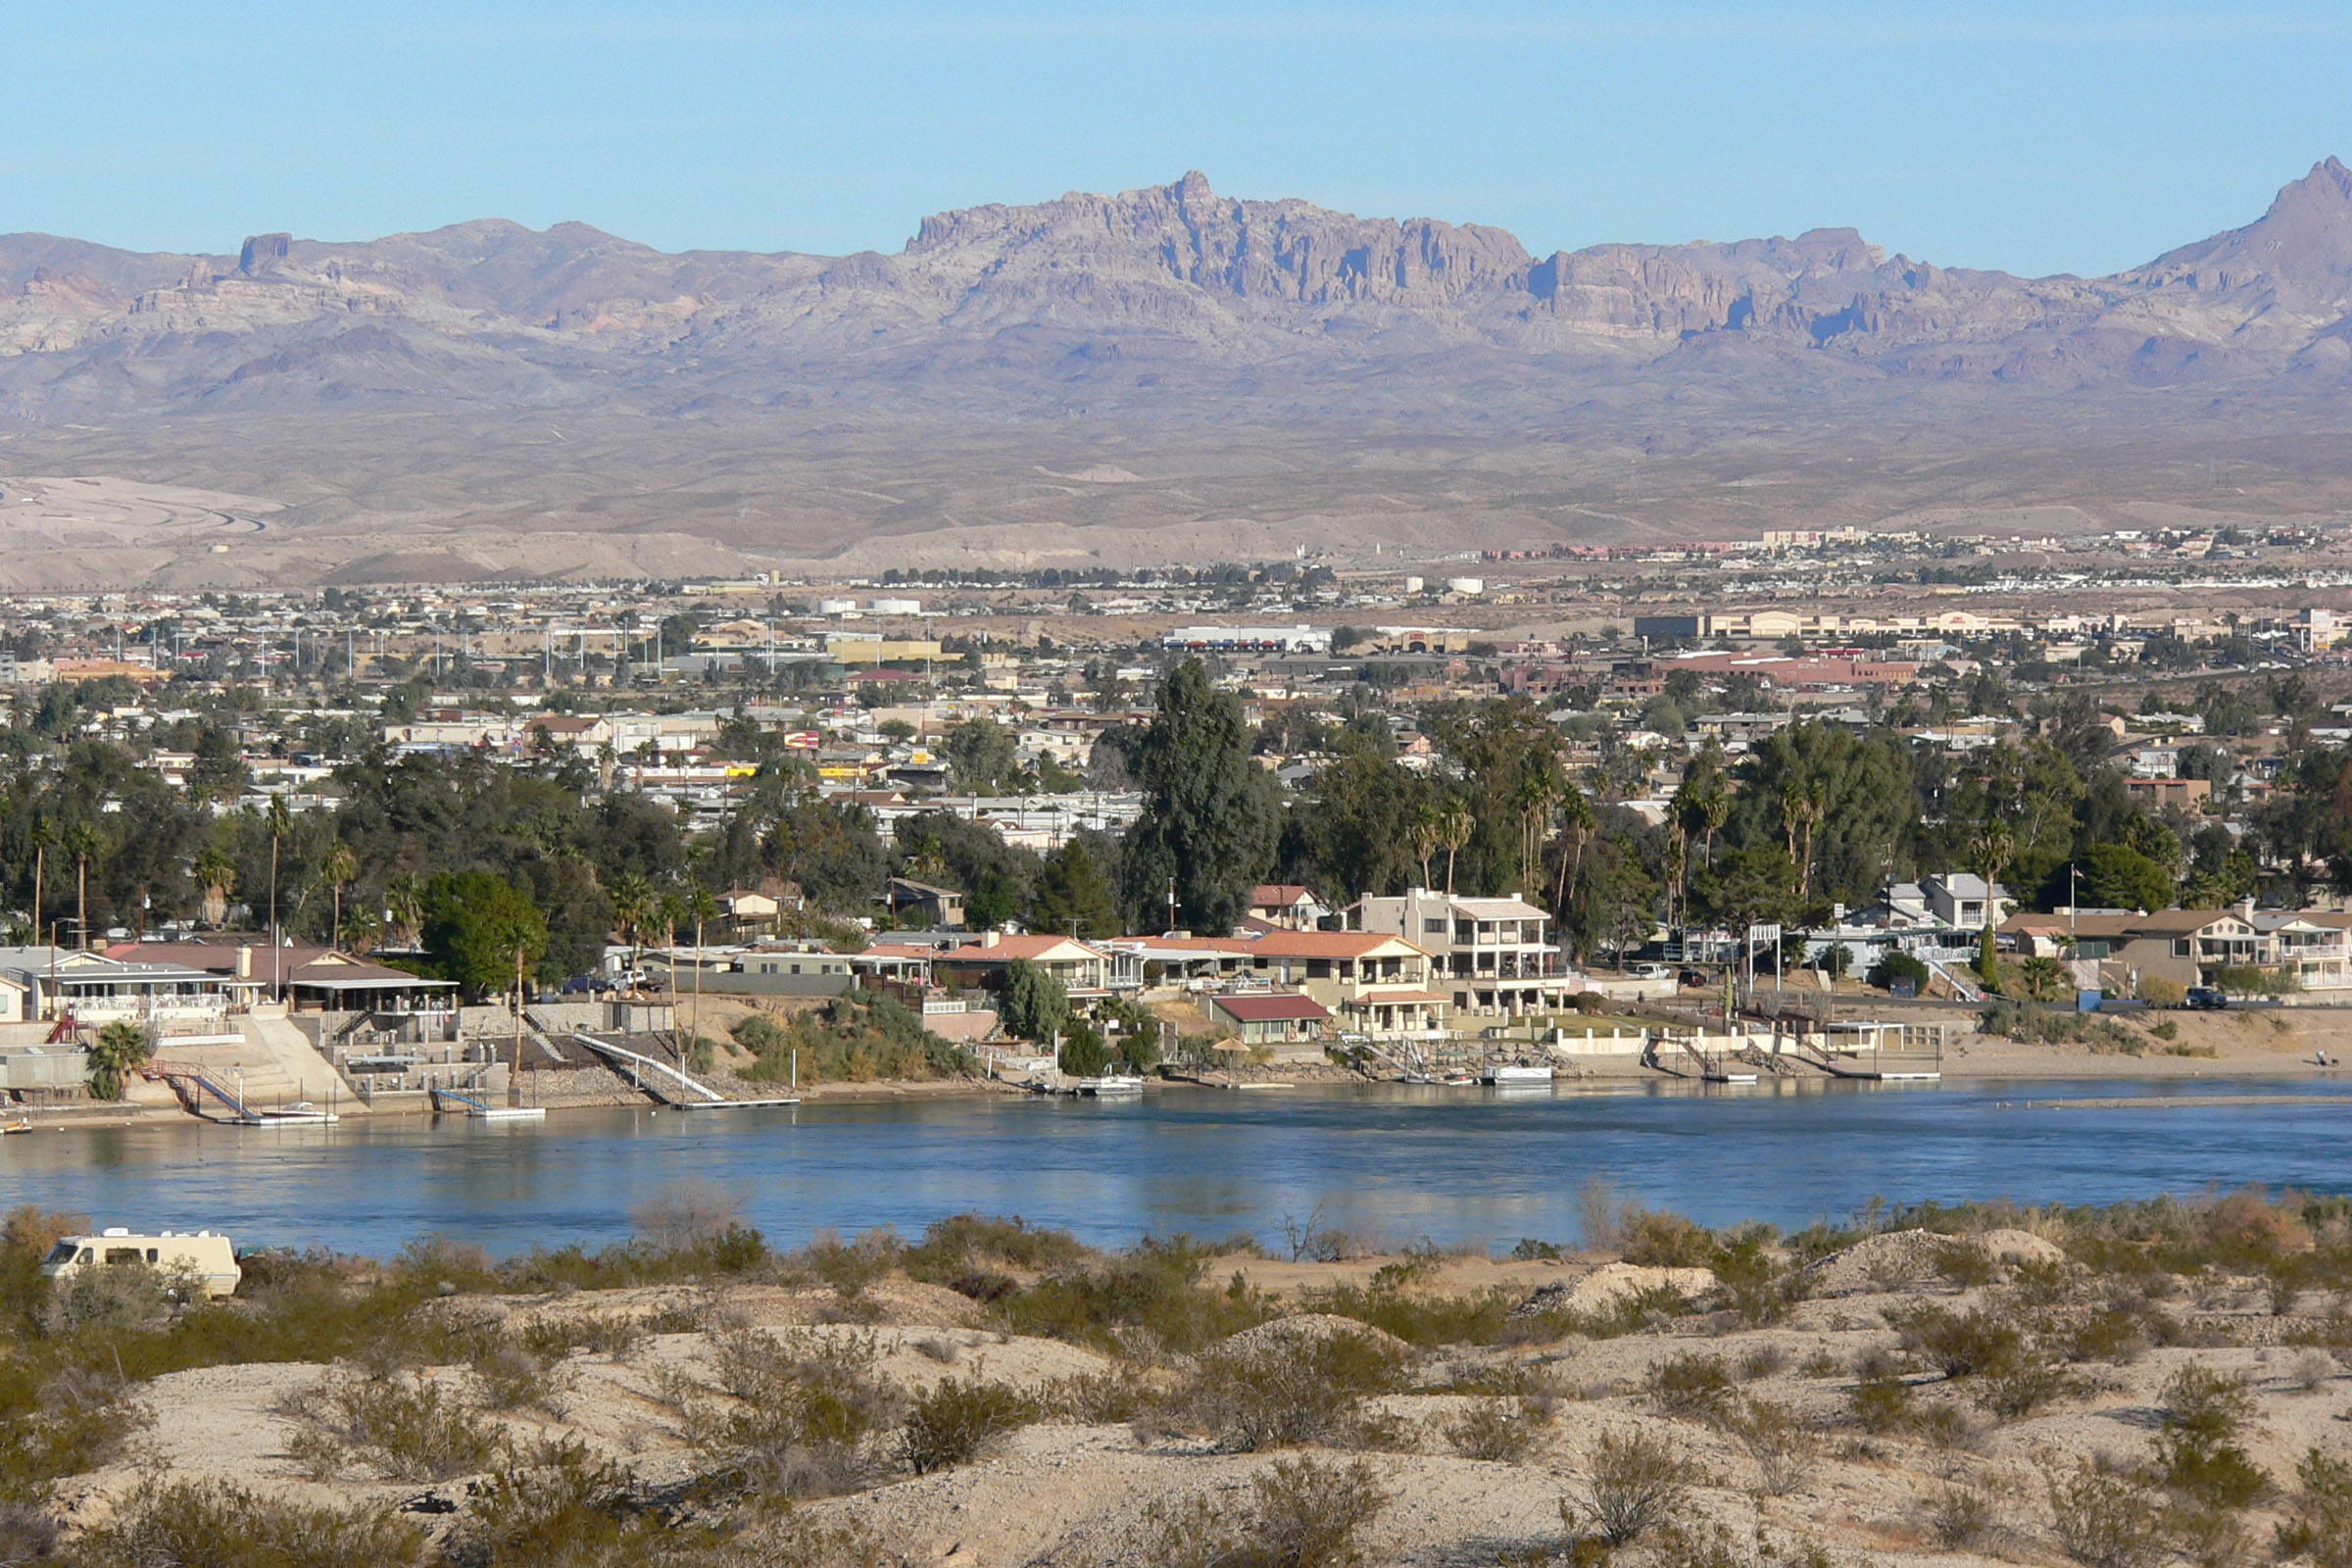 File:Bullhead City Arizona 3.bullhead city city